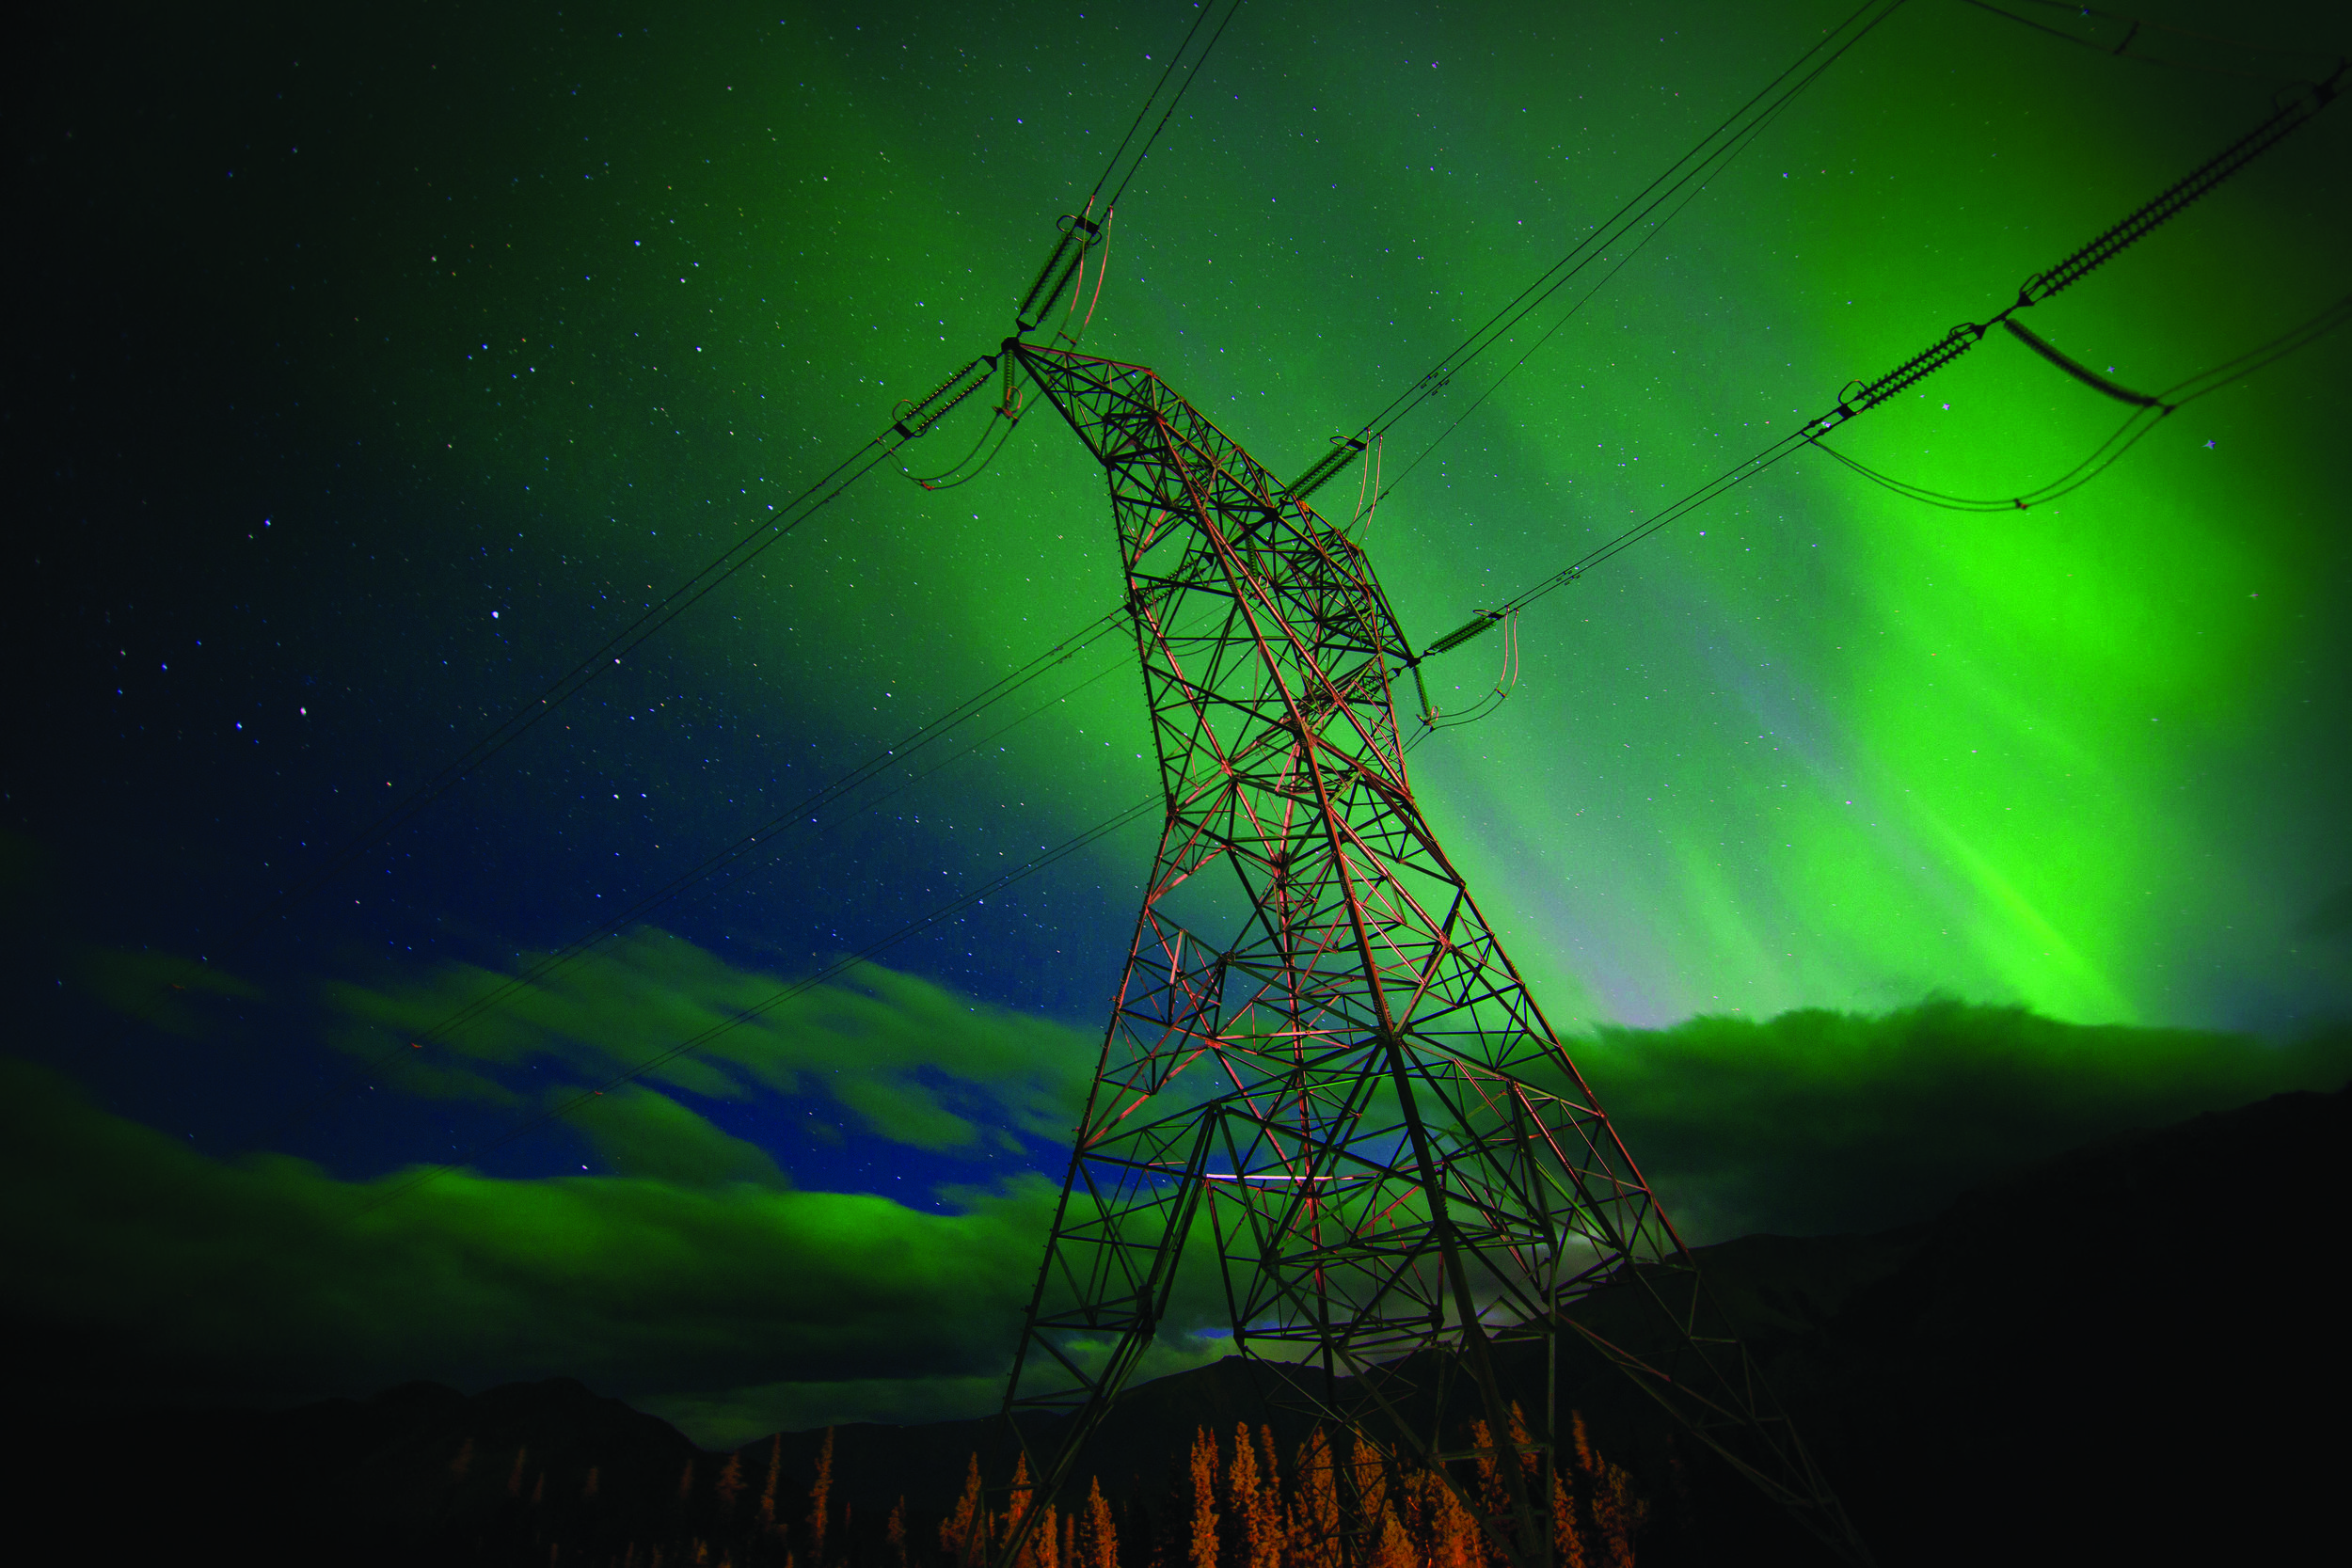 Tower_Aurora_light_print_cmyk_HiRes copy.jpg